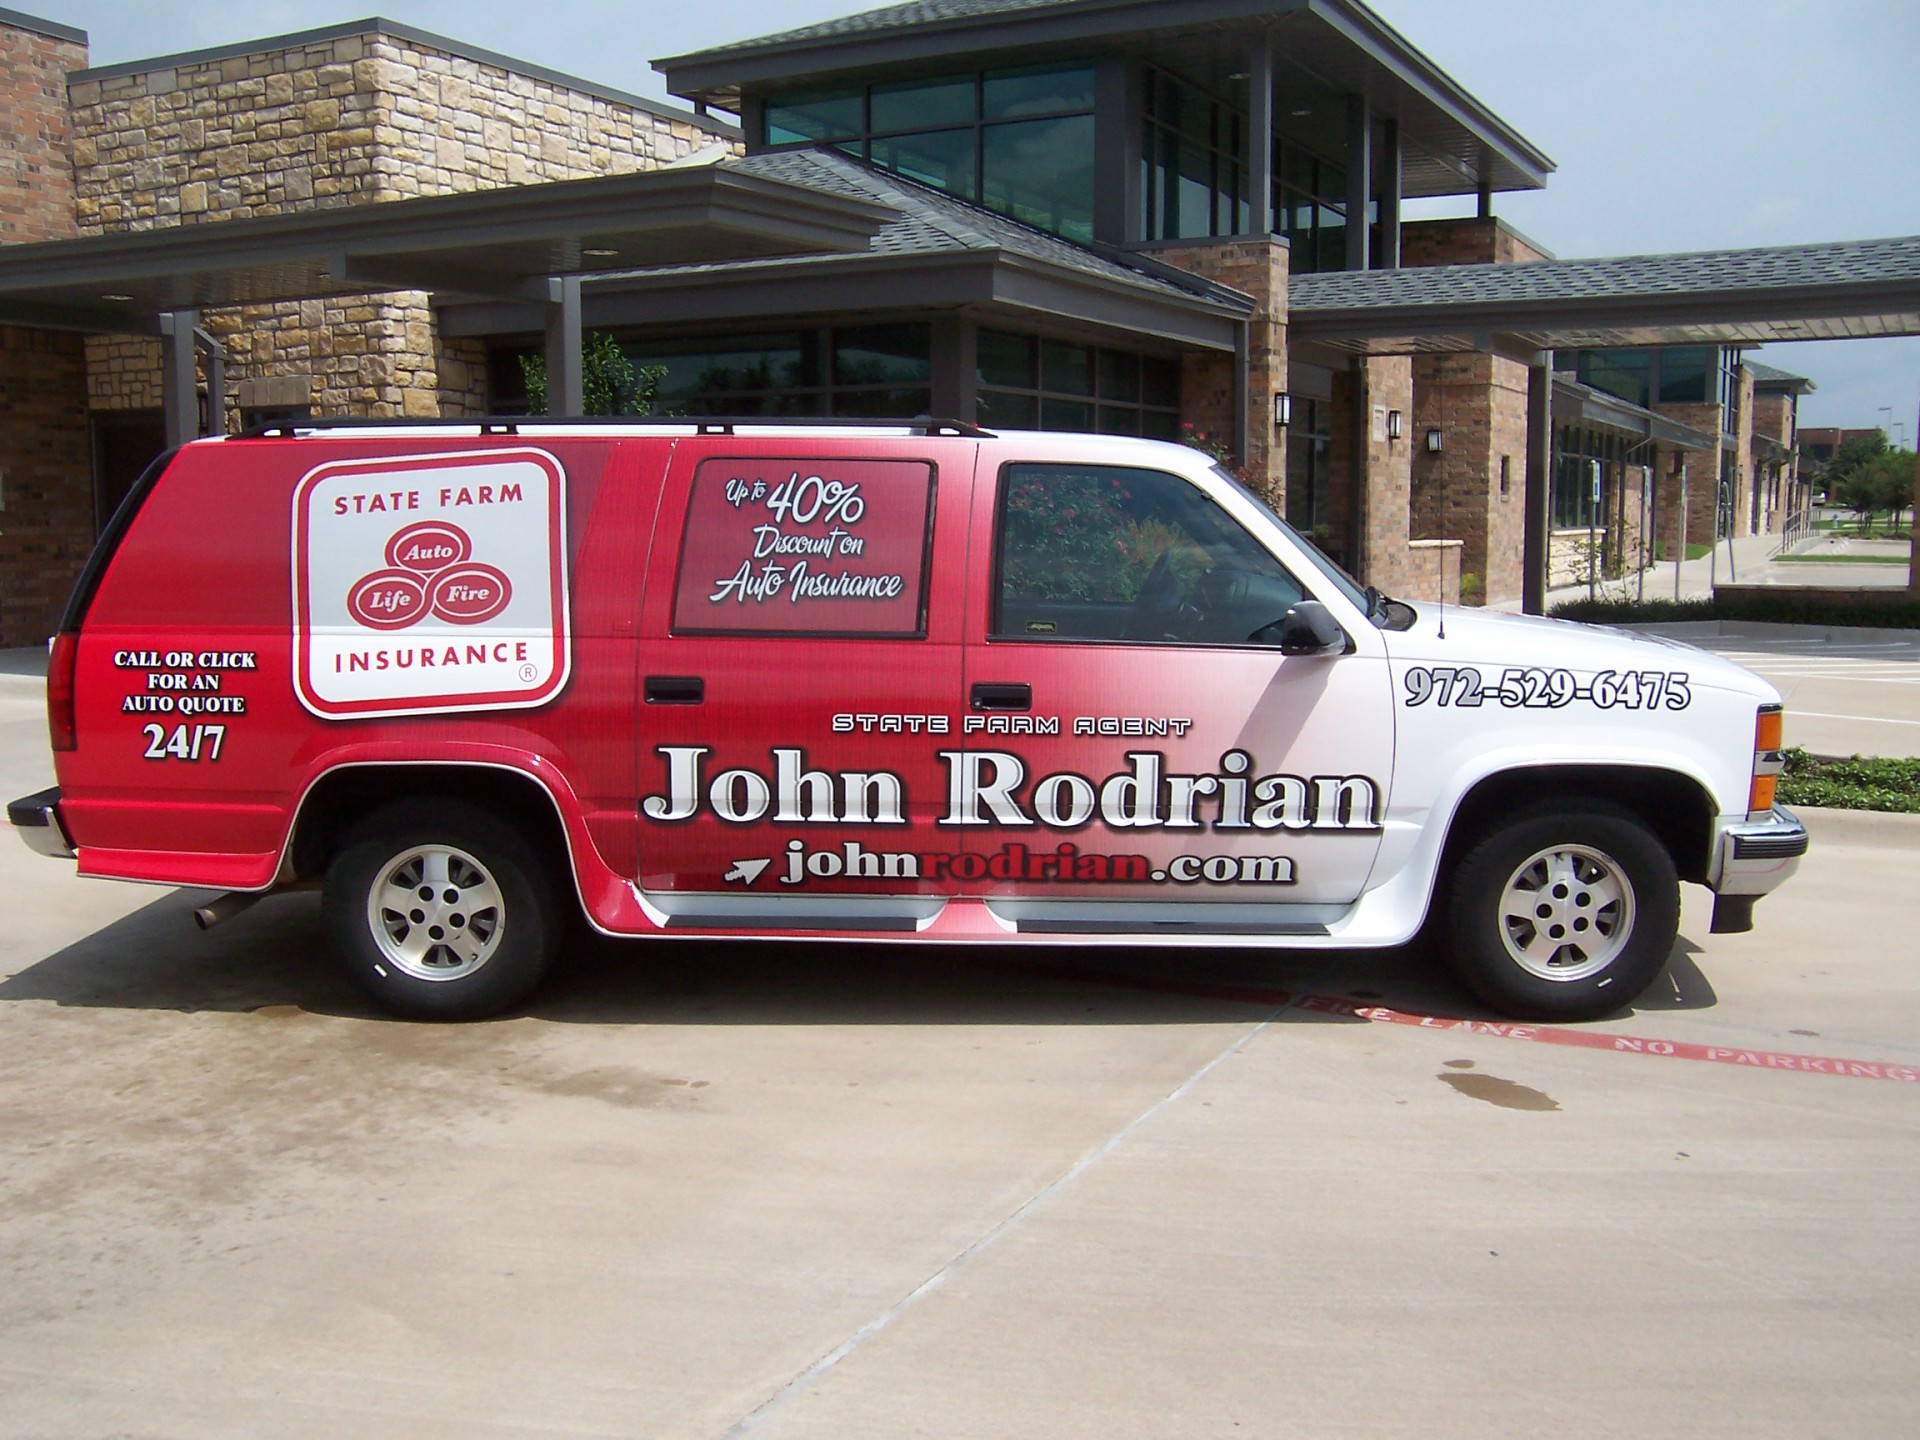 State Farm Agent John Rodrian, State Farm Wraps, Vehicle Wraps Dallas TX